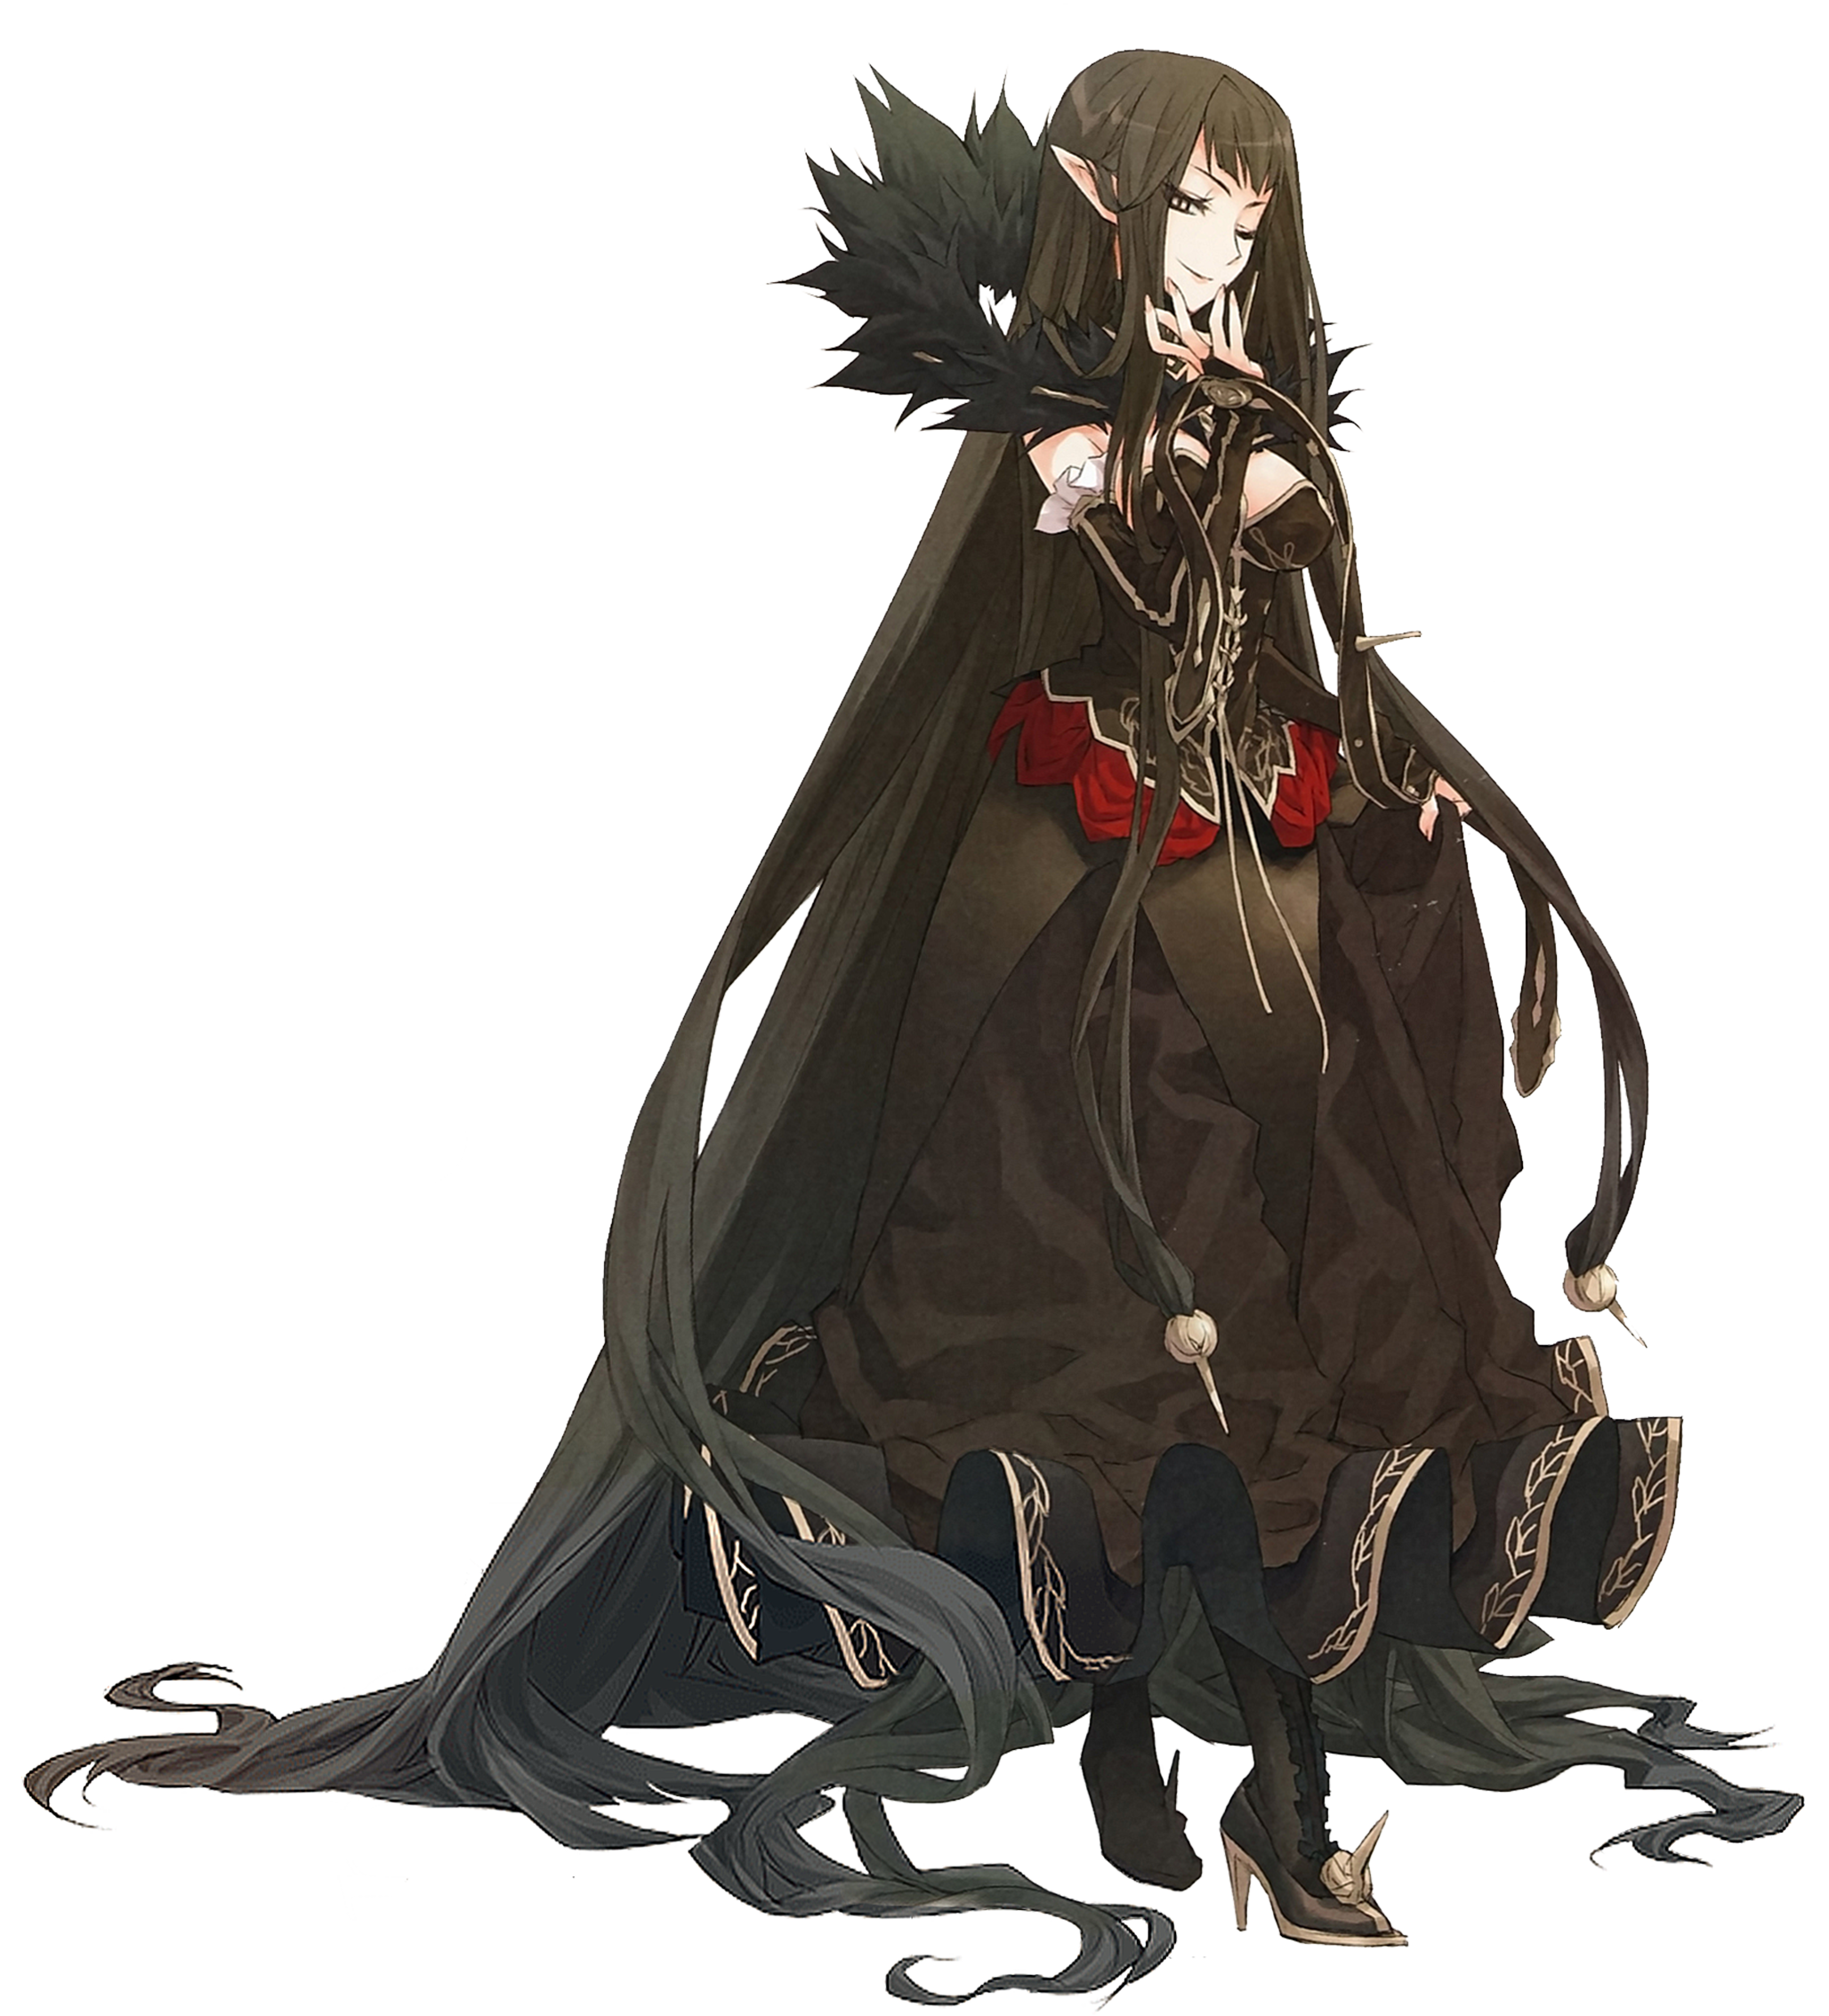 svg transparent library Latest foster fight female. Gauntlet drawing assassin